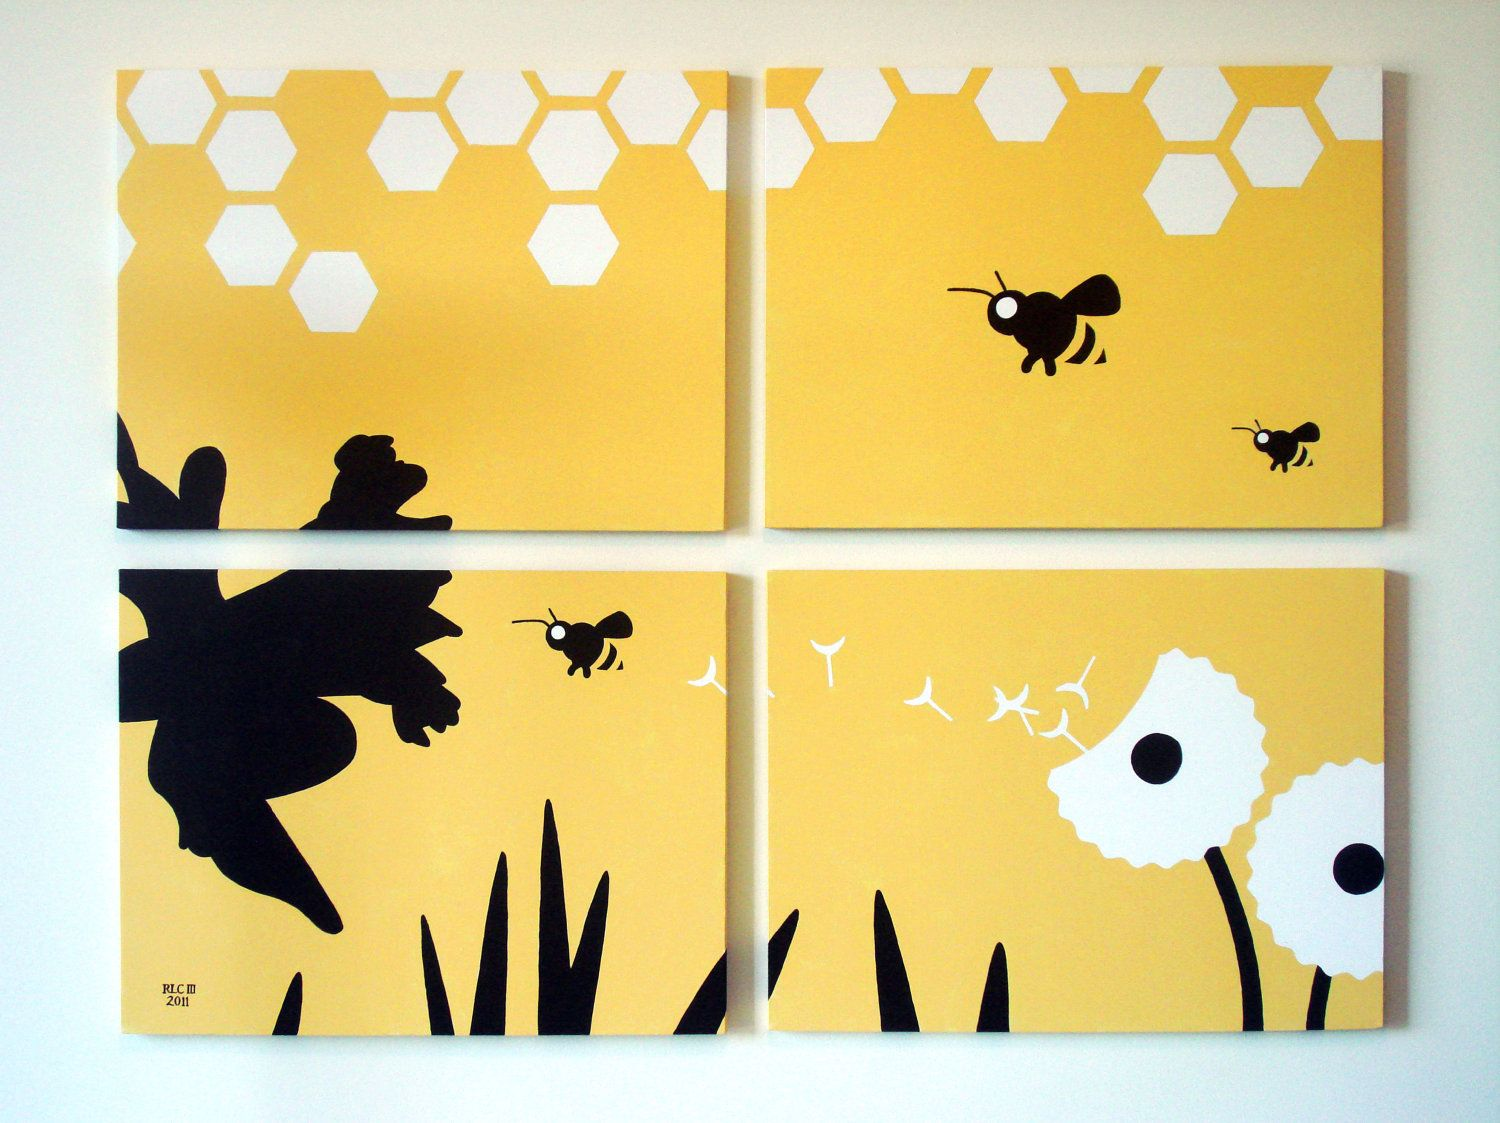 Bumble Bee Painting - Honey Bee Modern Wall Art - Handmade Acrylic ...